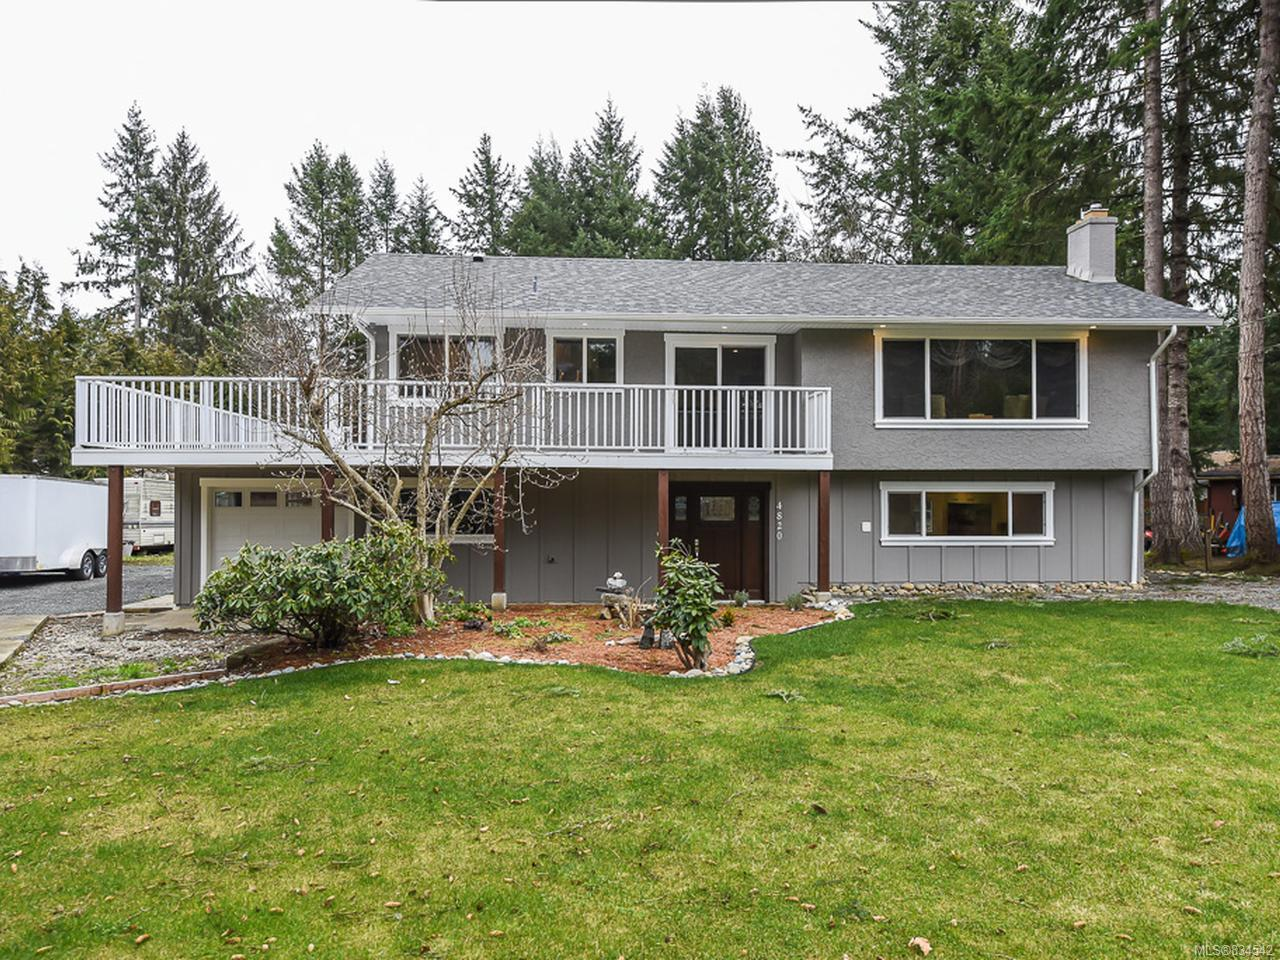 FEATURED LISTING: 4820 Andy Rd CAMPBELL RIVER